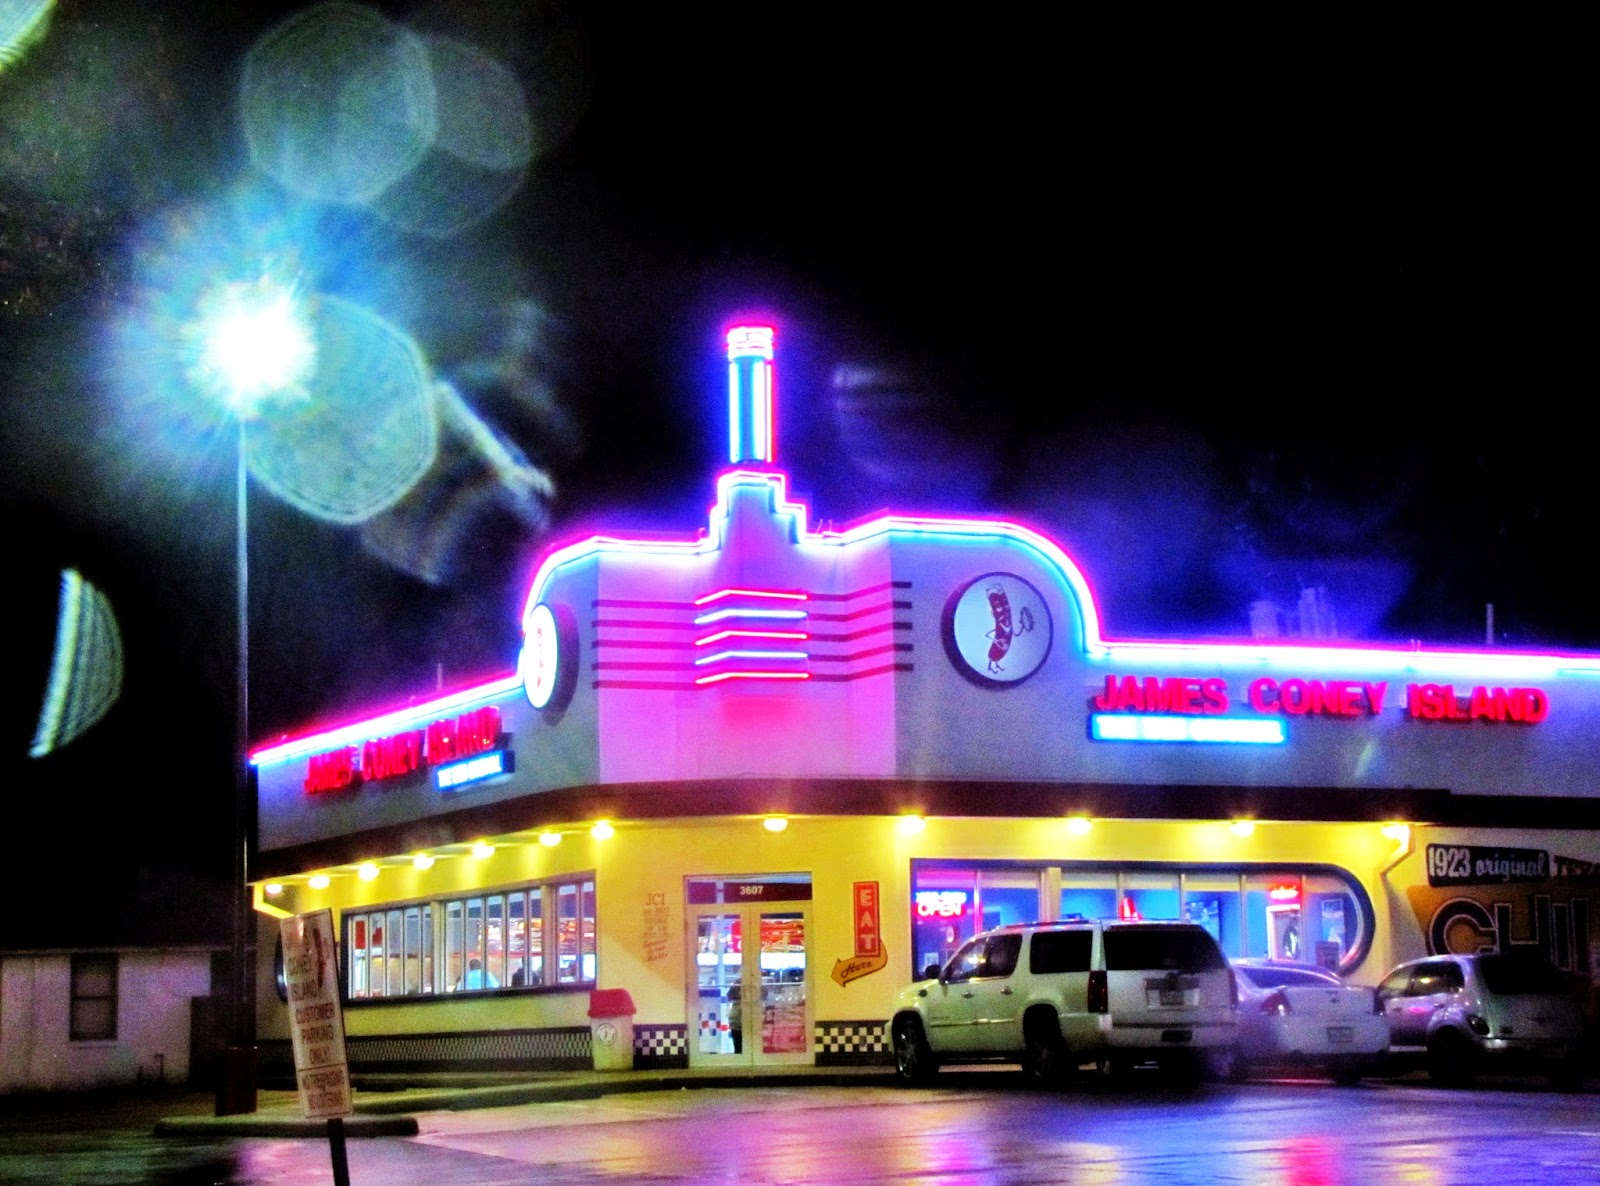 Night shot of Coney Island eatery with colorful neon signage and store lighting